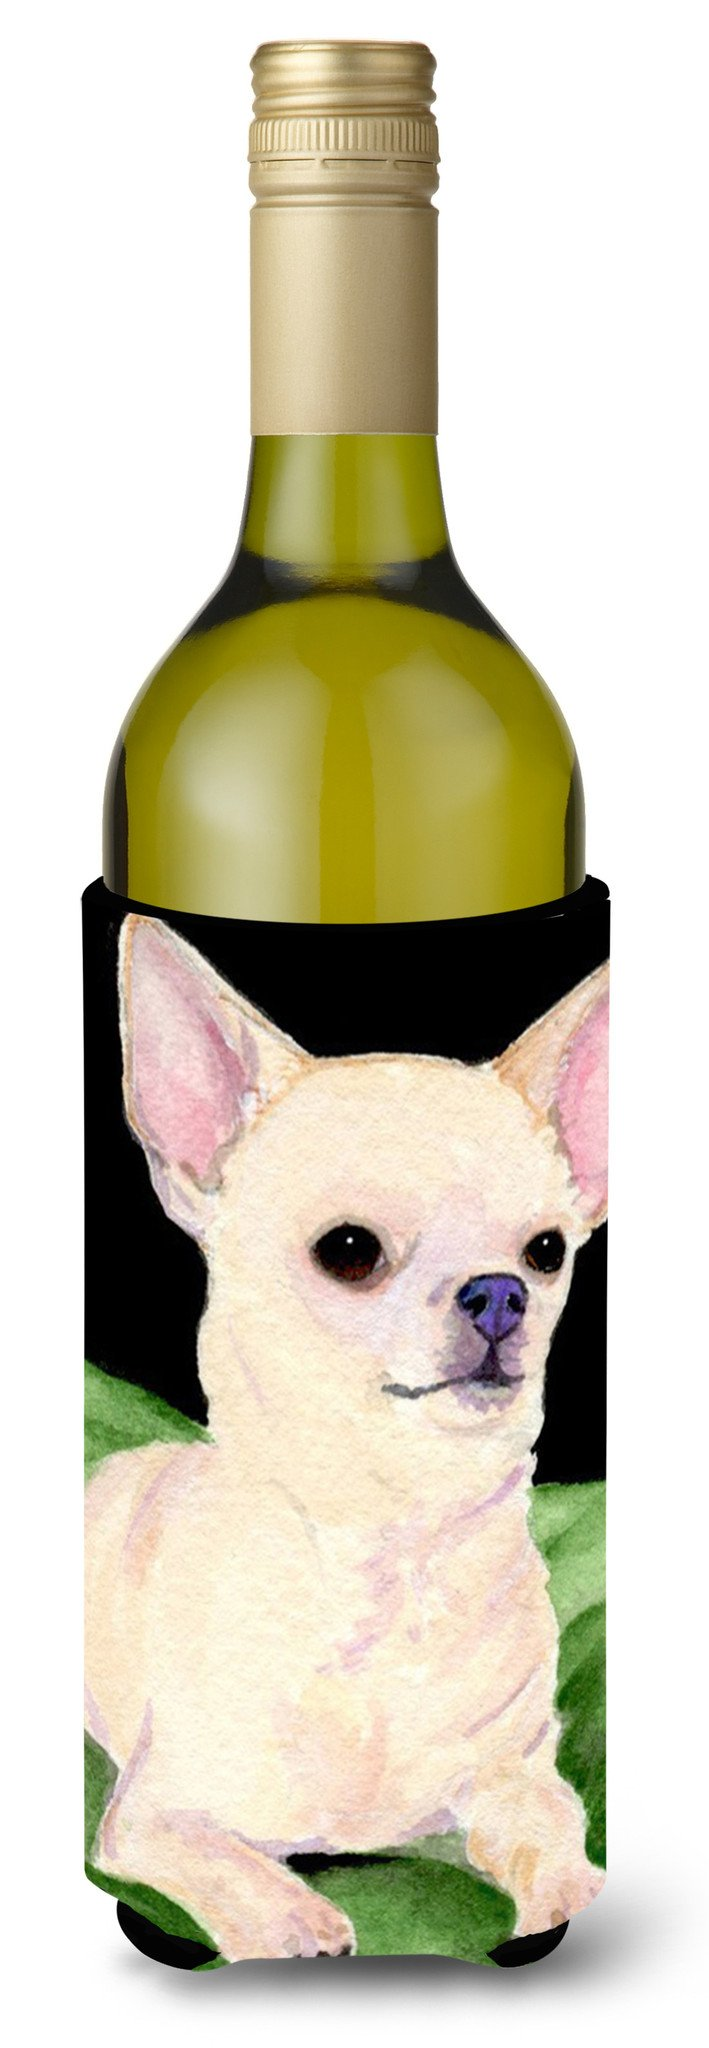 Chihuahua Wine Bottle Beverage Insulator Beverage Insulator Hugger SS8789LITERK by Caroline's Treasures